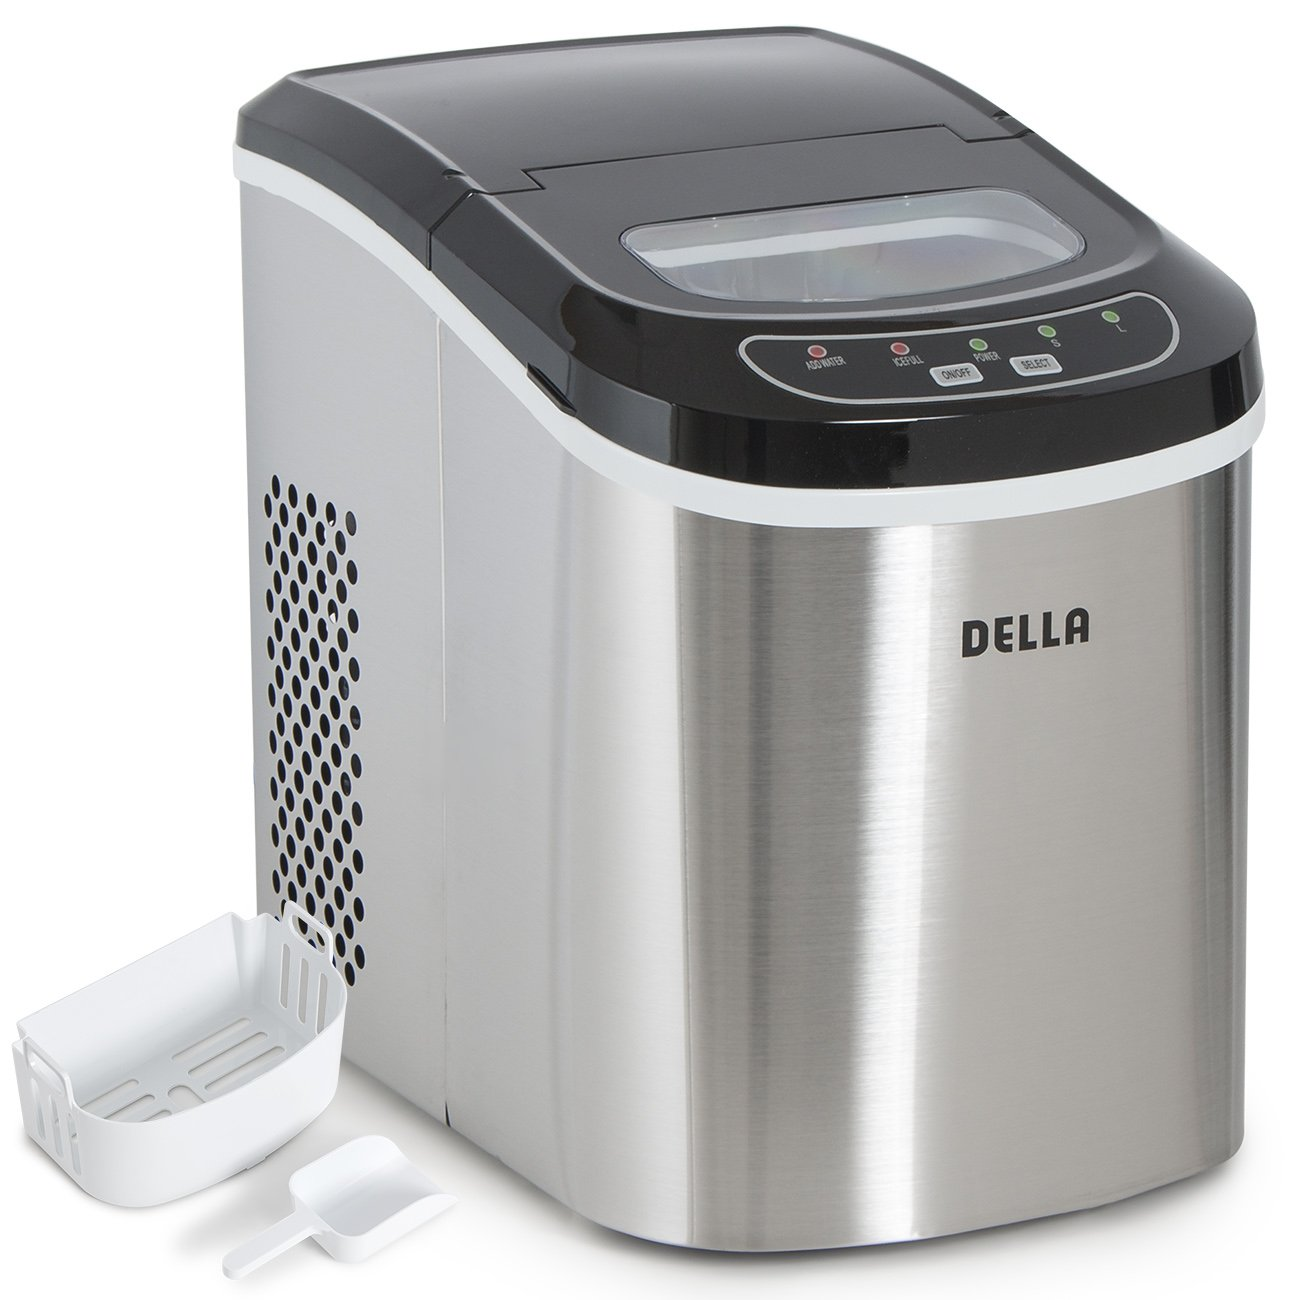 DELLA Electric Ice Maker Machine Portable Automatic Icemaker 26lbs per day 2-Selectable Ice Cube, Stainless Steel